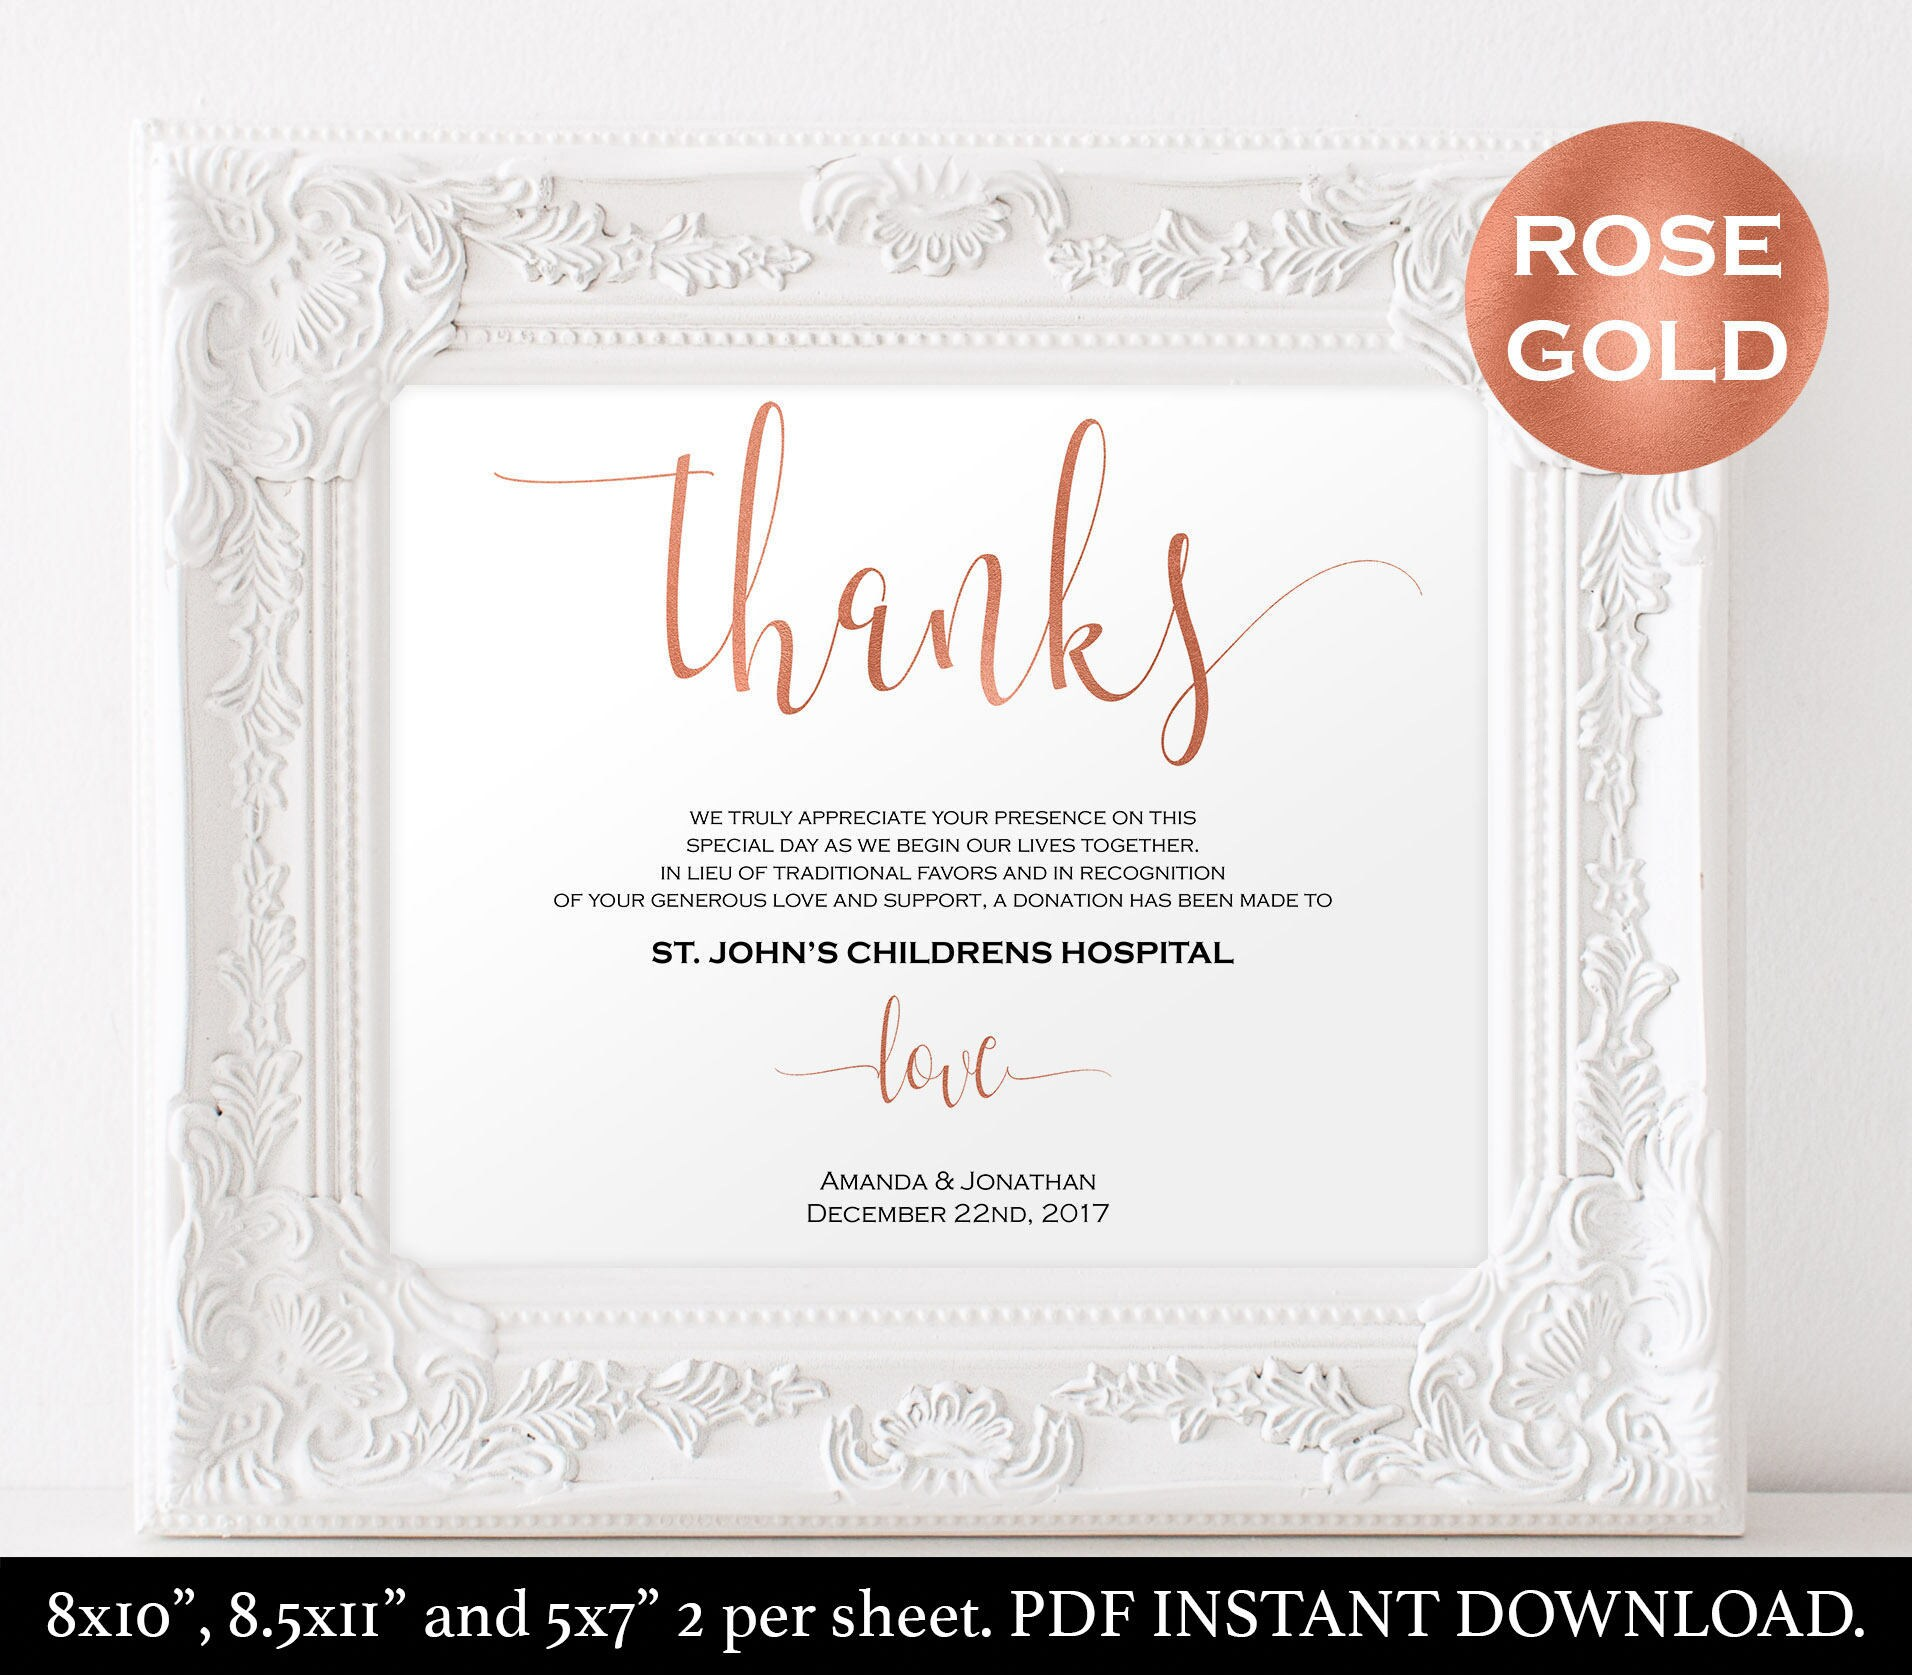 In Lieu of Wedding Favors Thank You Donation Printable | Etsy